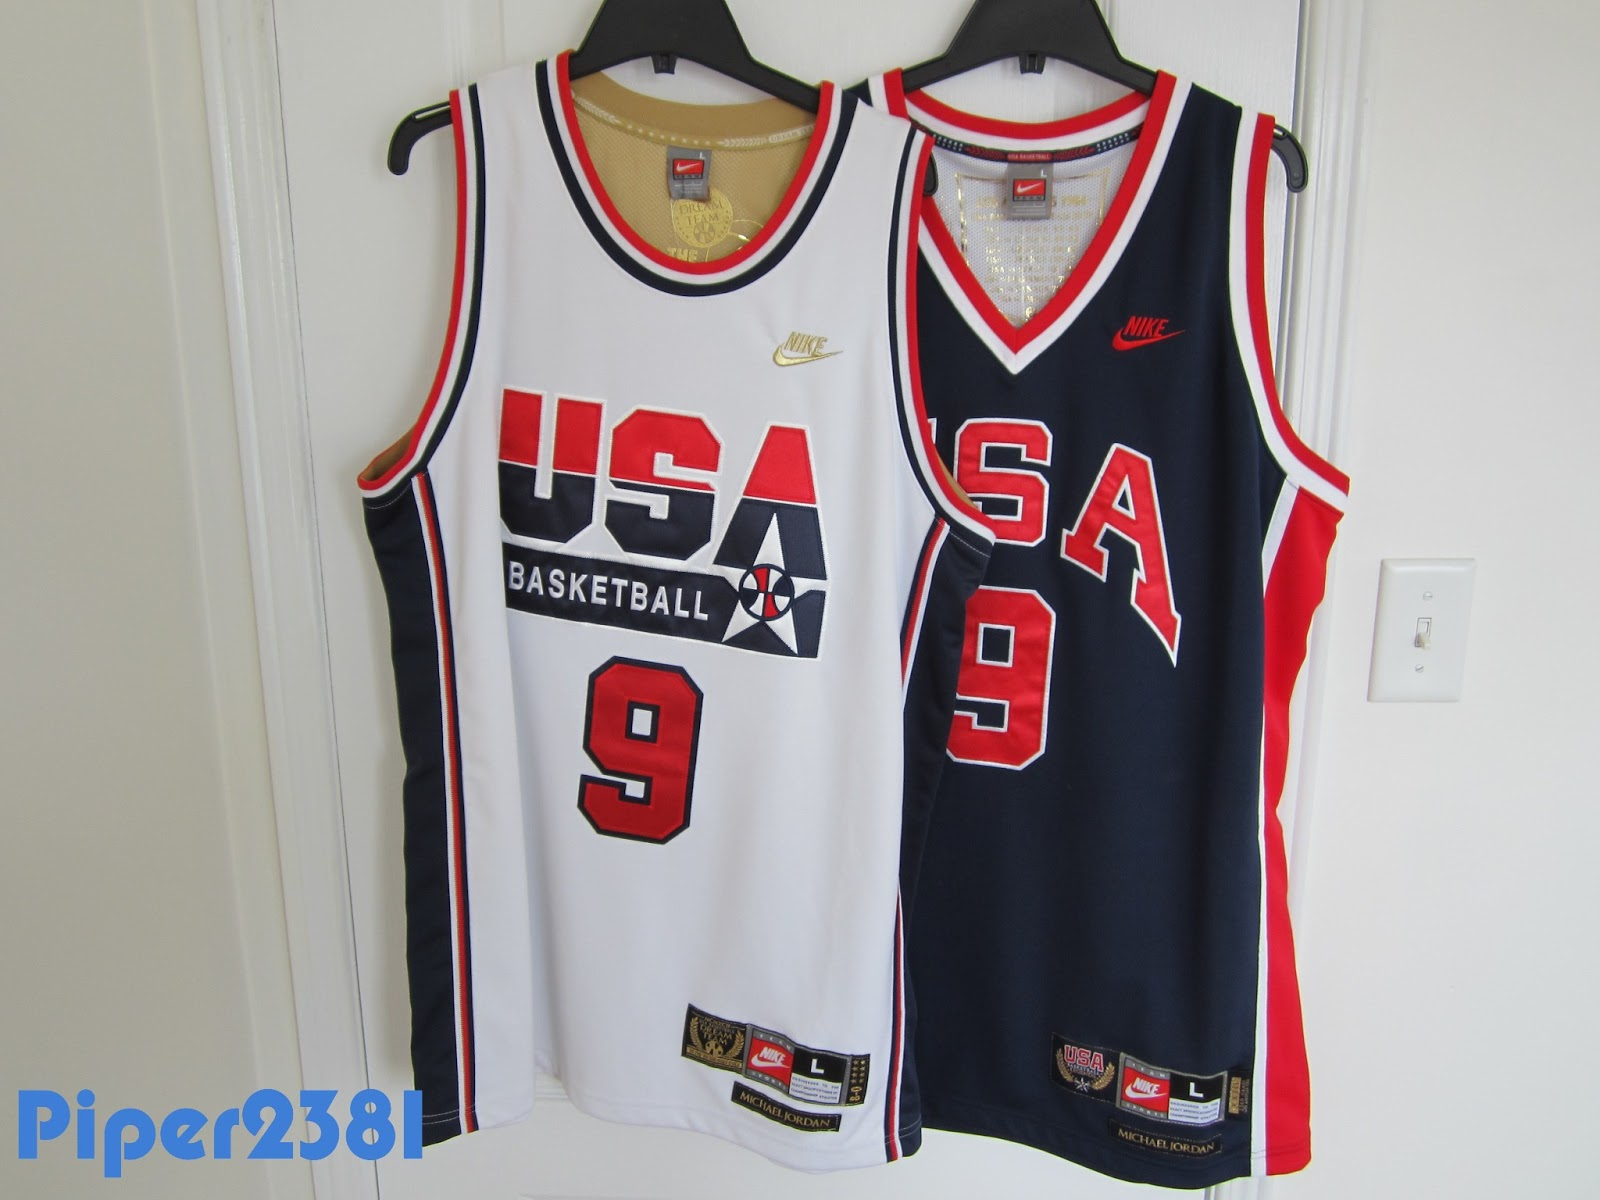 official photos 7cf77 dc167 Piper2381: Michael Jordan Olympic Jerseys